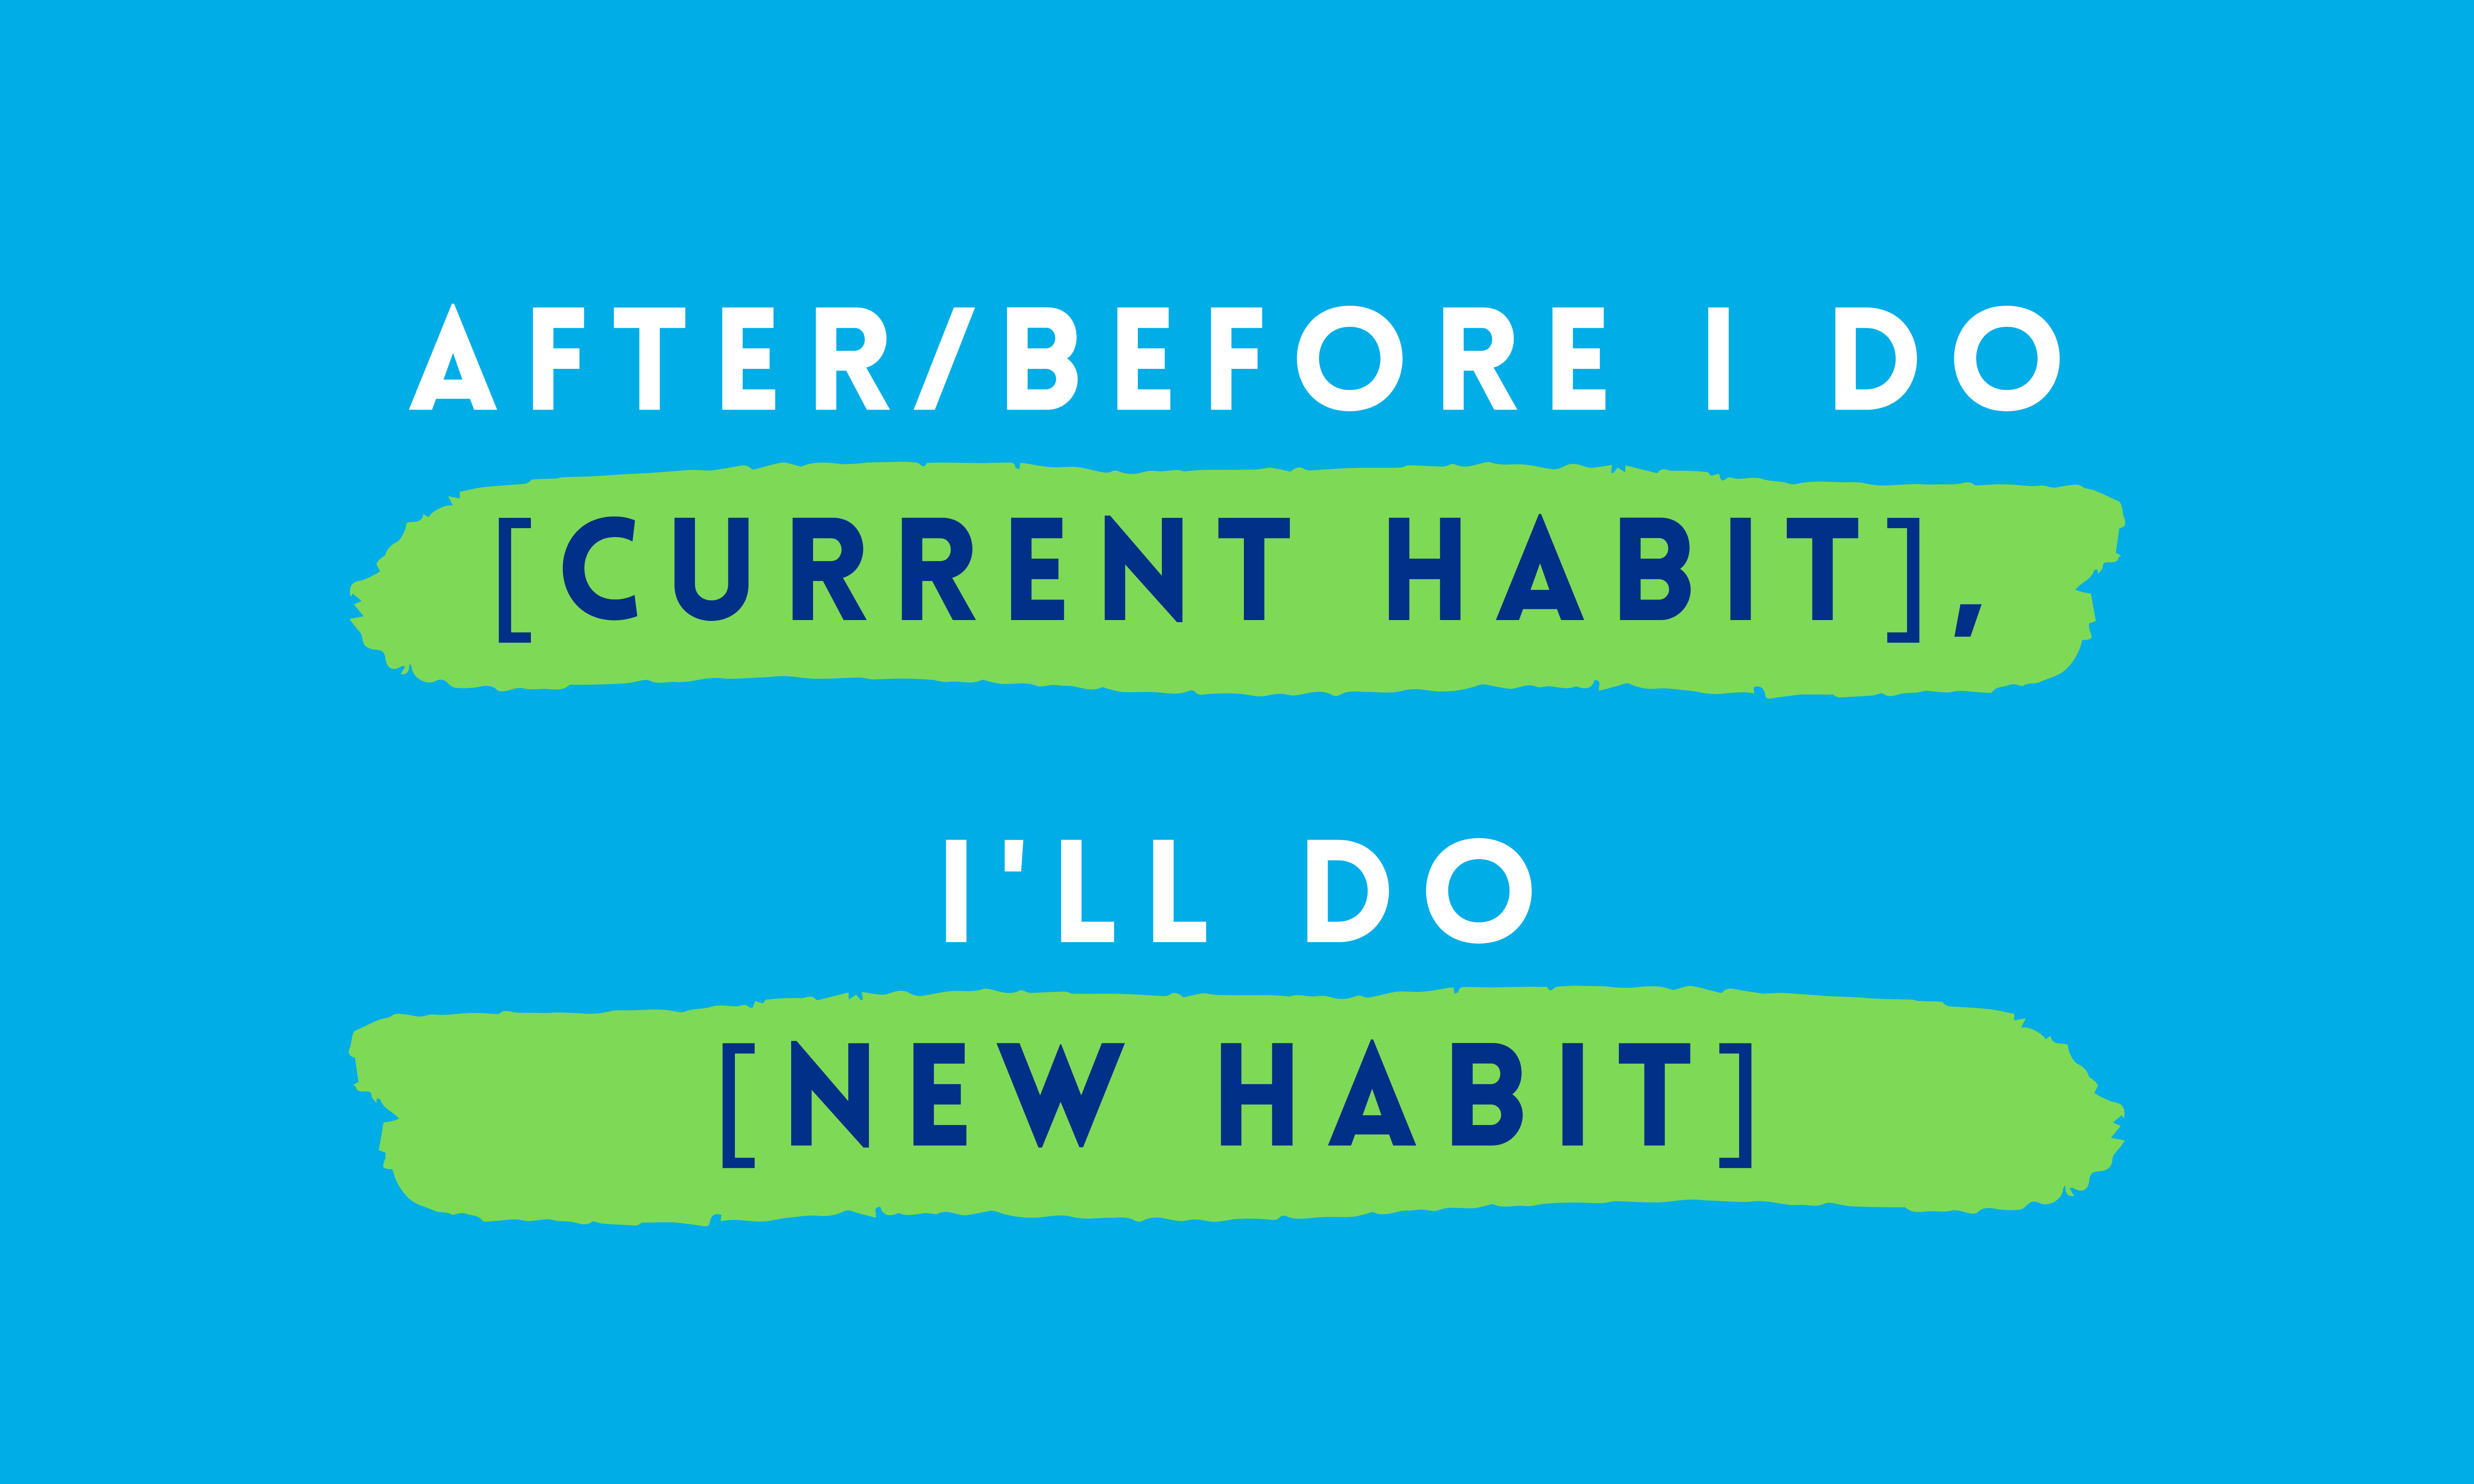 After/before I do [current habit], I will do [new habit]